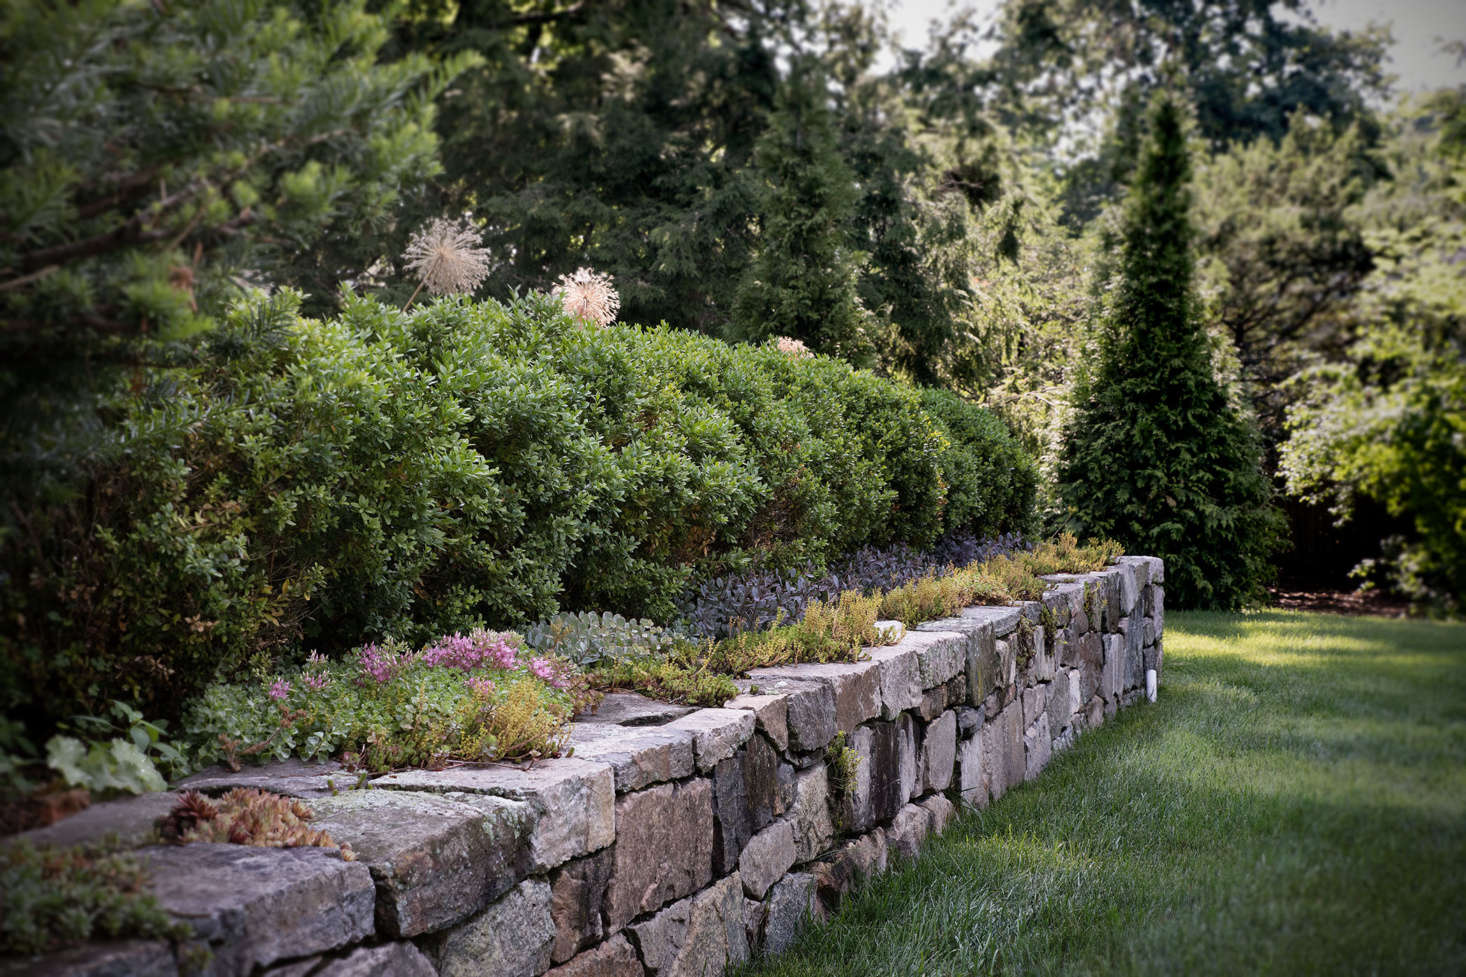 Old stones interplanted with mosses and creeping ground covers make the newly constructed wall seem age-old.